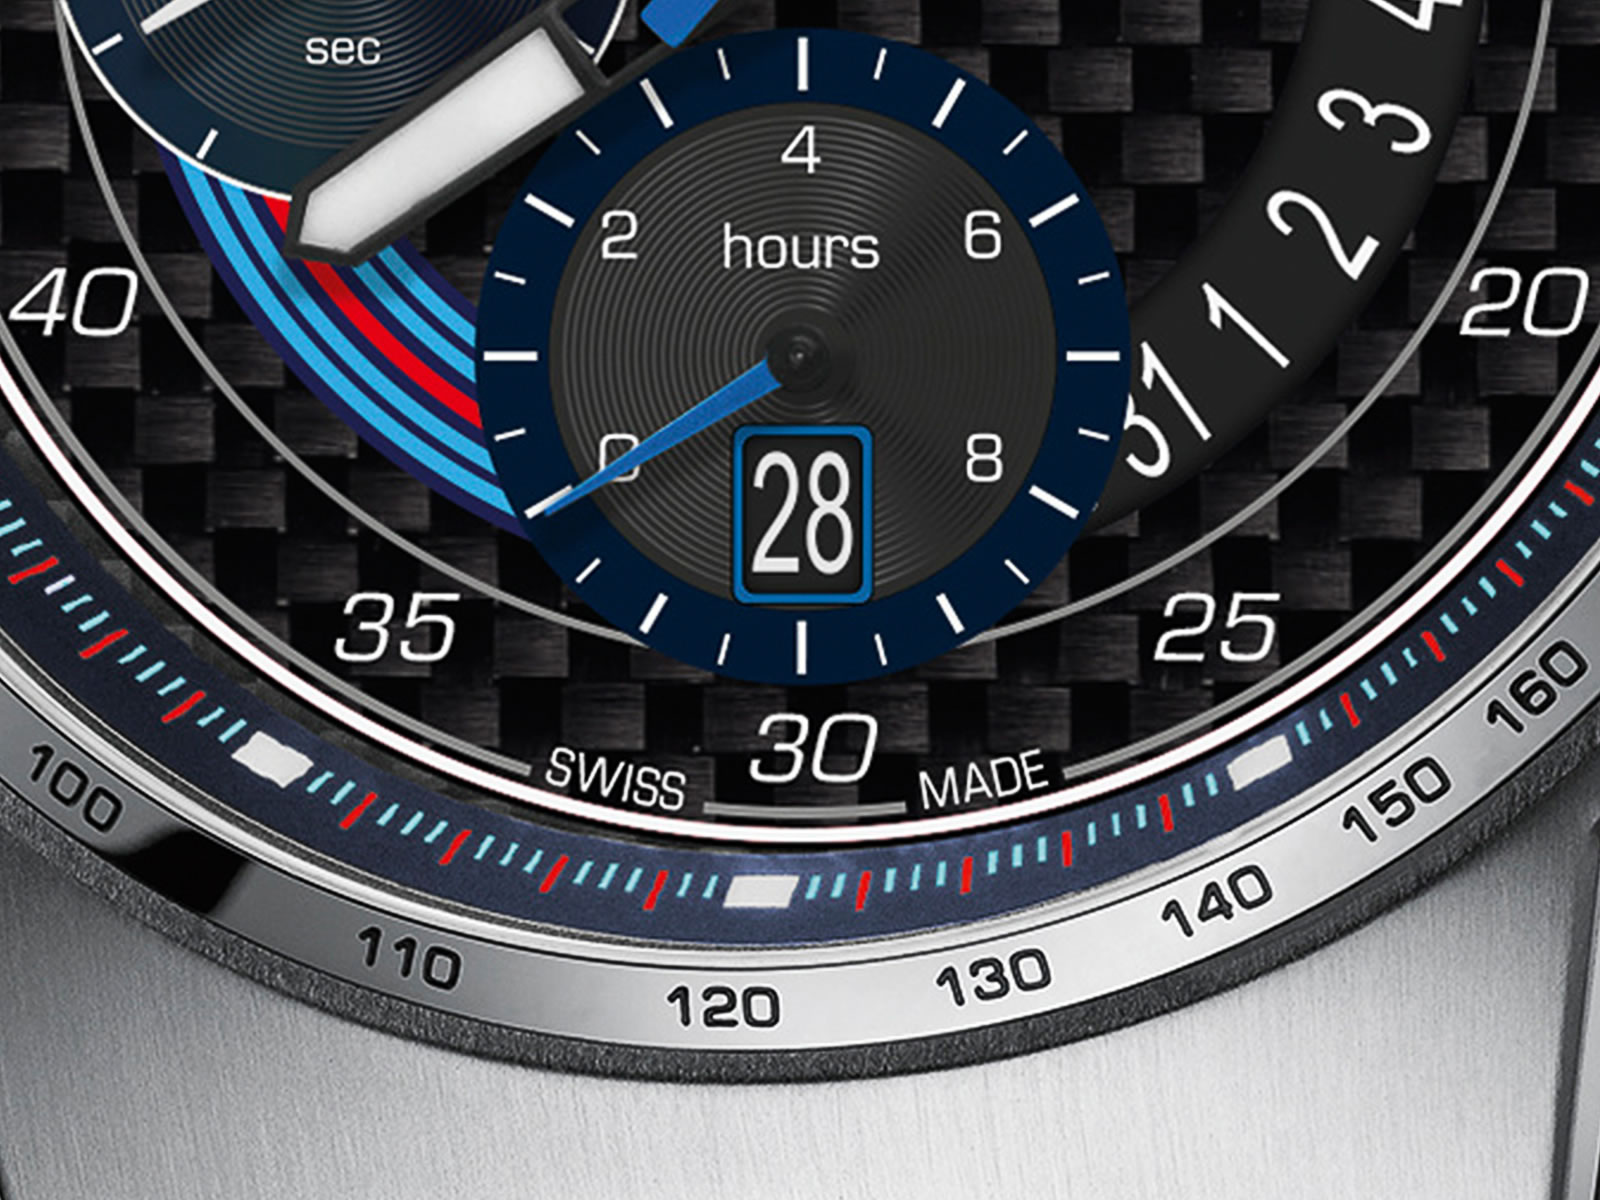 01-774-7717-4184-oris-martini-racing-limited-edition-chronograph-2018-3-.jpg